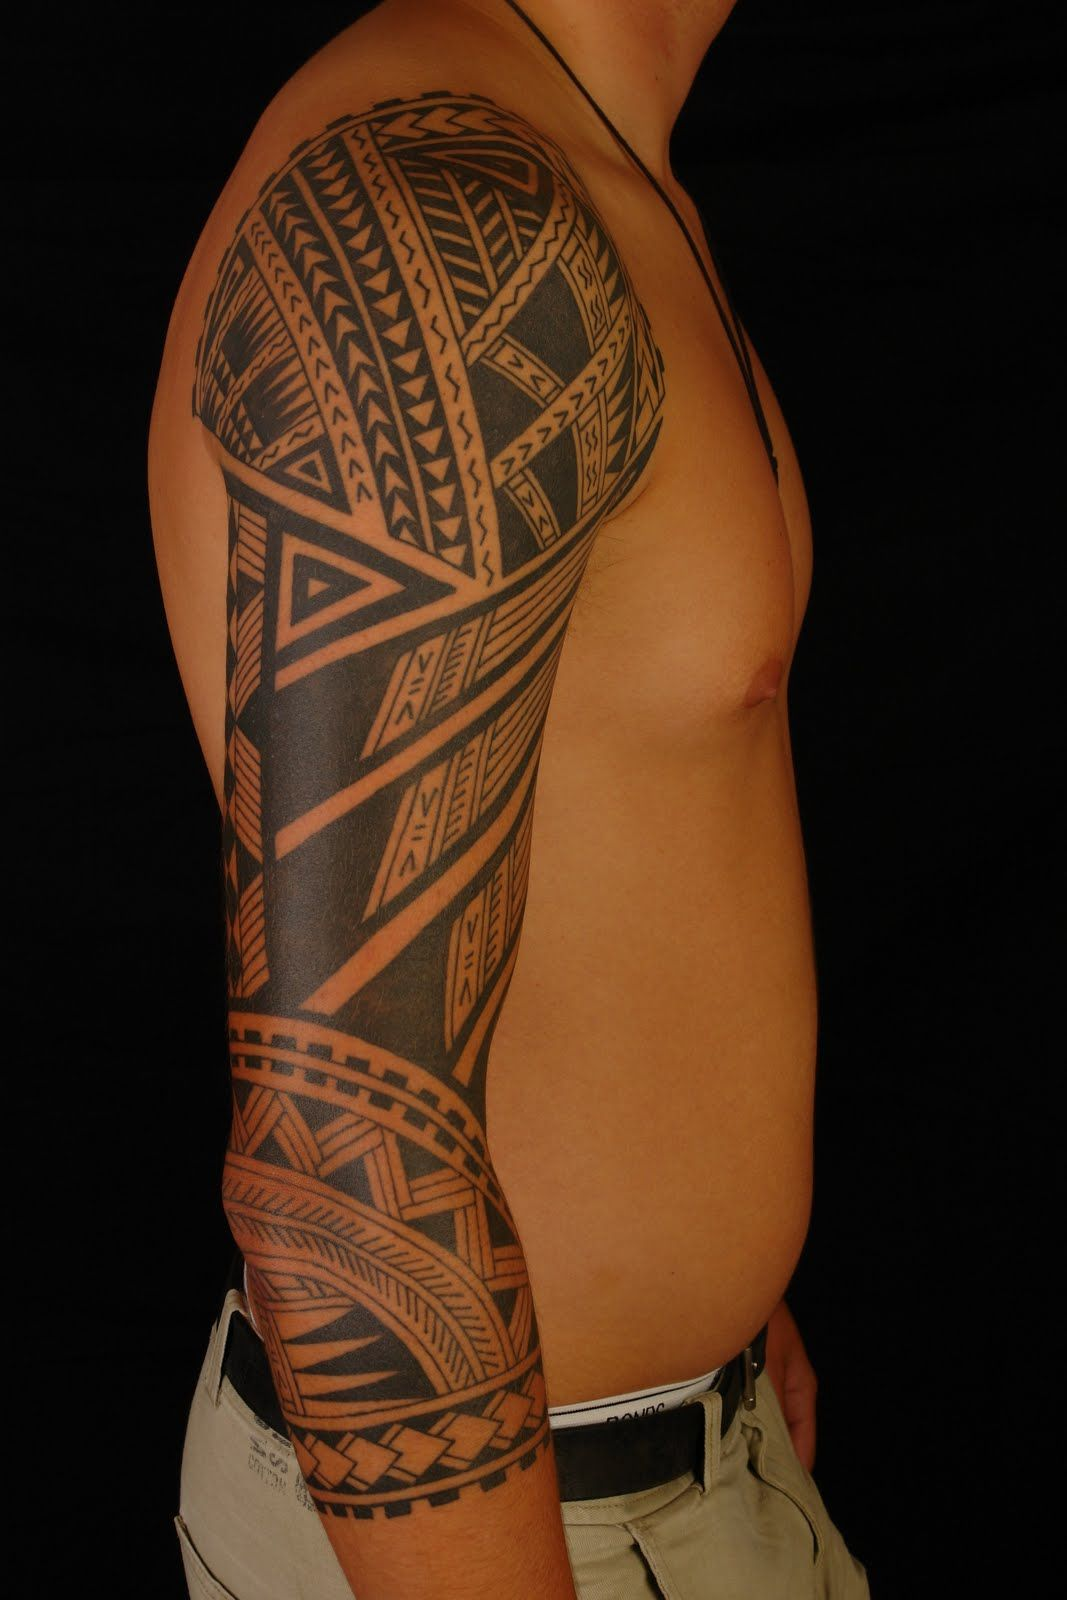 69 meaningful family tattoos designs mens craze - This Tattoo Picture Polynesian Tribal Arm Tattoo Is One Of Many Tattoo Ideas Listed In The Arm Tattoos Category Feel Free To Browse Other Tattoo Ideas I